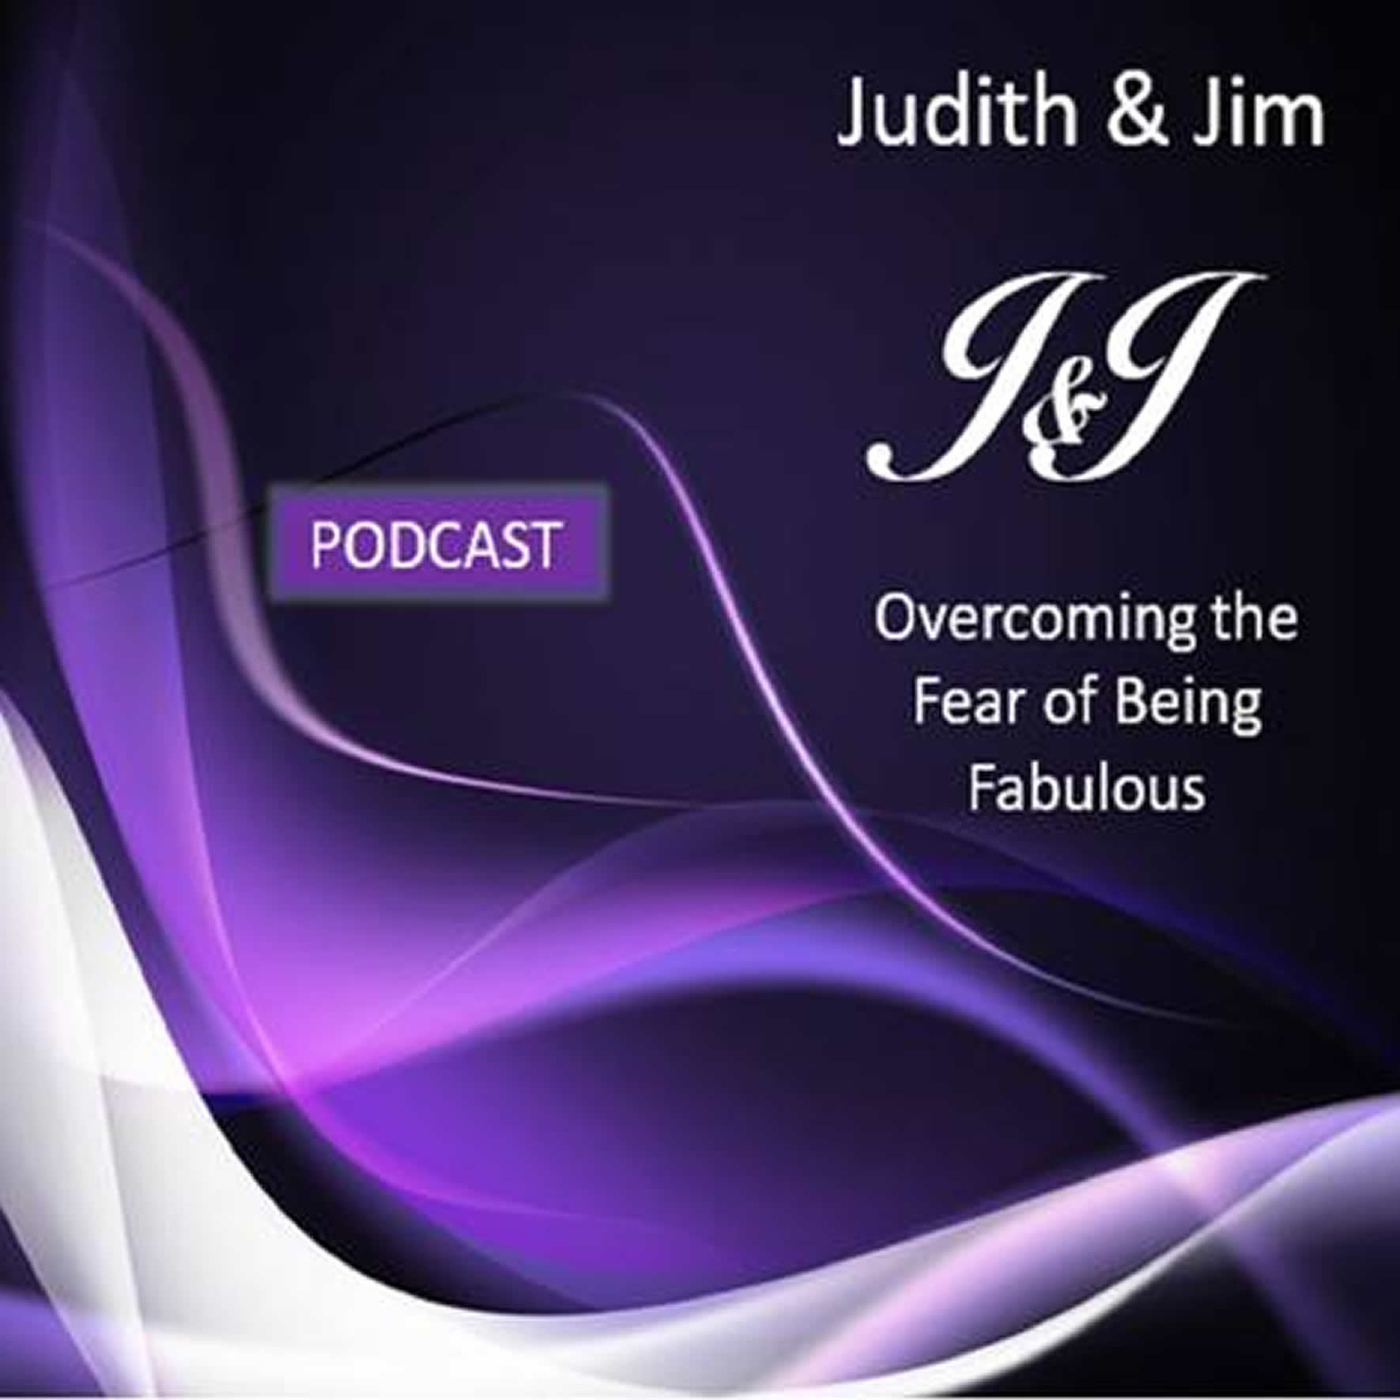 Overcoming the Fear of Being Fabulous with Judith & Jim